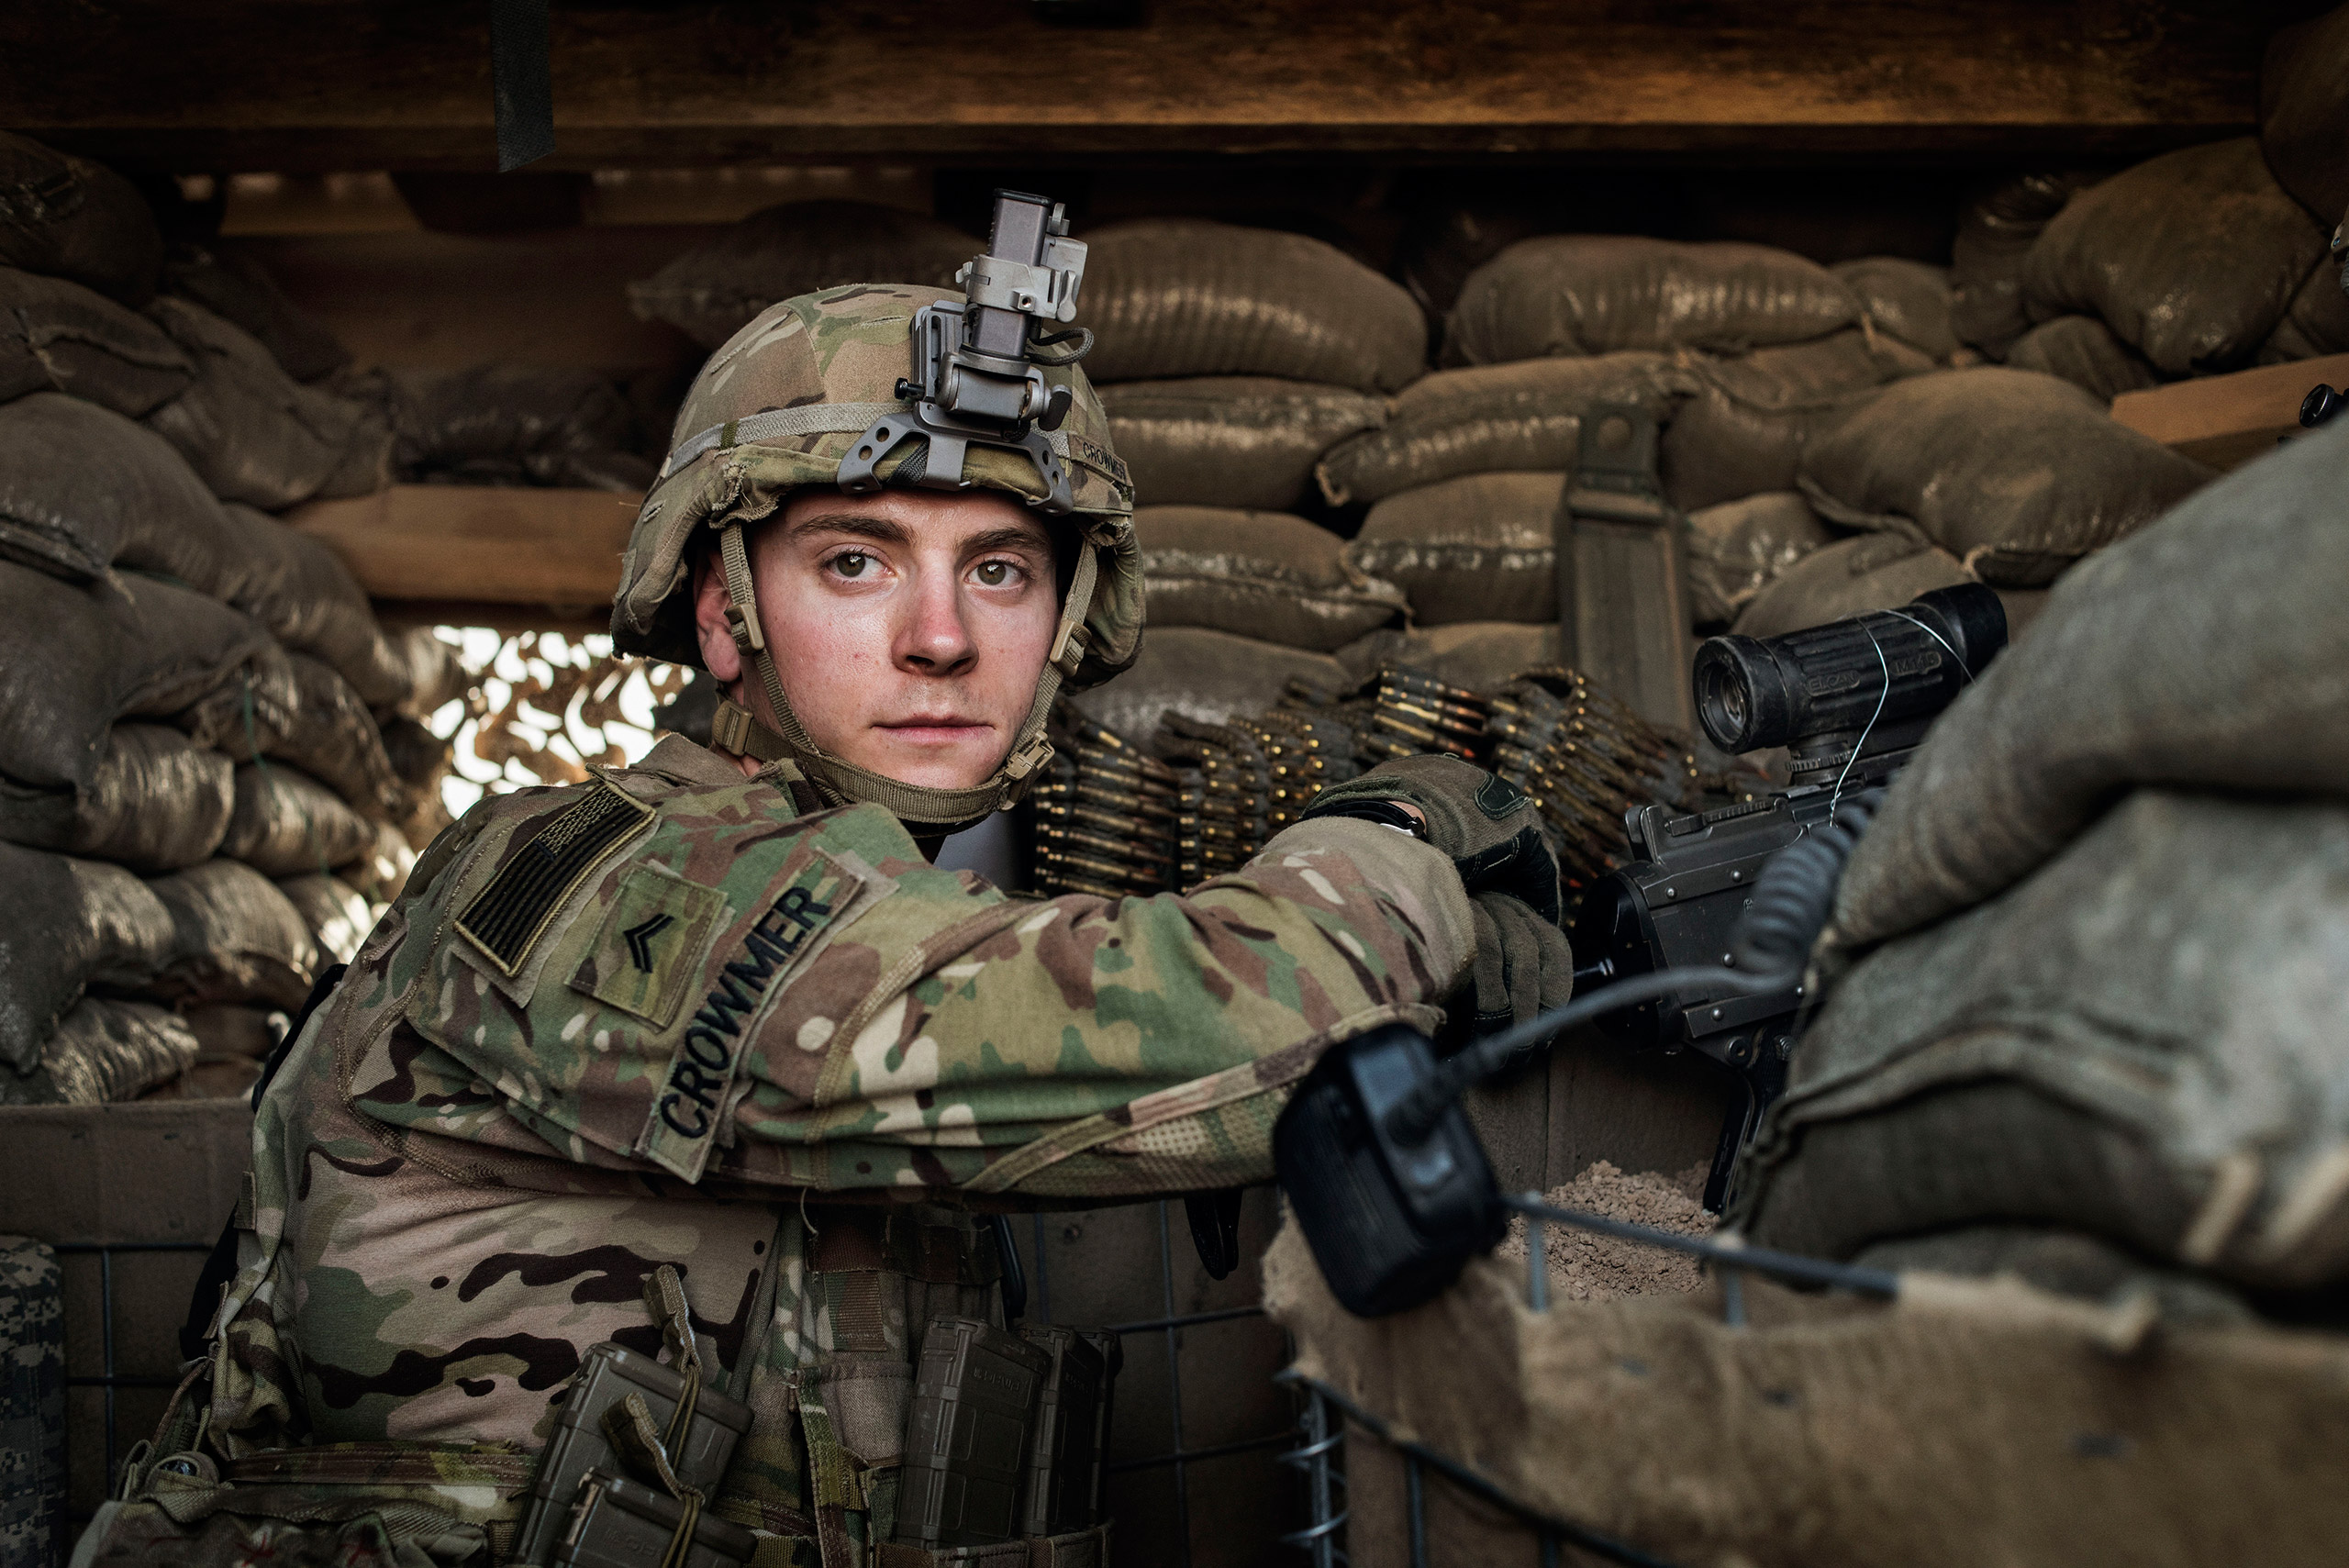 A U.S. Army soldier John Crowmer, 23, from Noblesville, IN, guards the U.S. military base at Camp Swift, near the Iraqi town of Makhmour, May 17, 2016. As of April, at least 4,087 U.S. military personnel were deployed in Iraq, many of them backing Iraqi forces in the drive to reclaim territory from ISIS.From  Yuri Kozyrev: On the Front Lines of the War Against ISIS